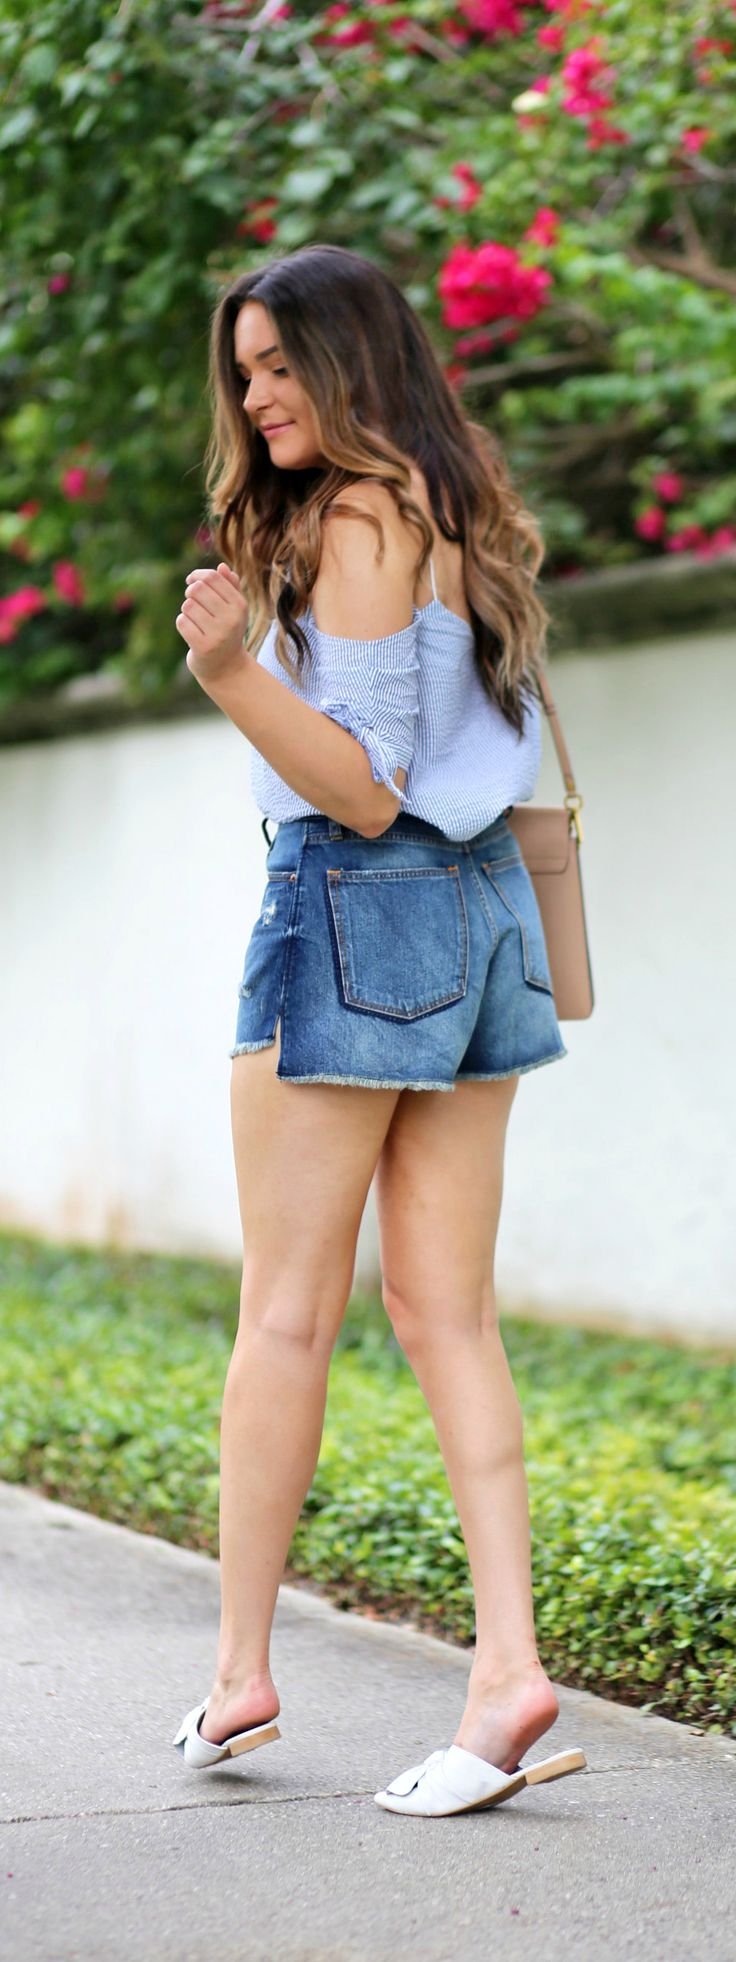 The perfect jean shorts! | Fashion blogger Mash Elle styles a blue striped seersucker off the shoulder top from Urban Outfitters  with high waisted cut off ripped jeans short from Abercrombie and Fitch shorts, Michael Hill watch, and Chloe Faye purse.